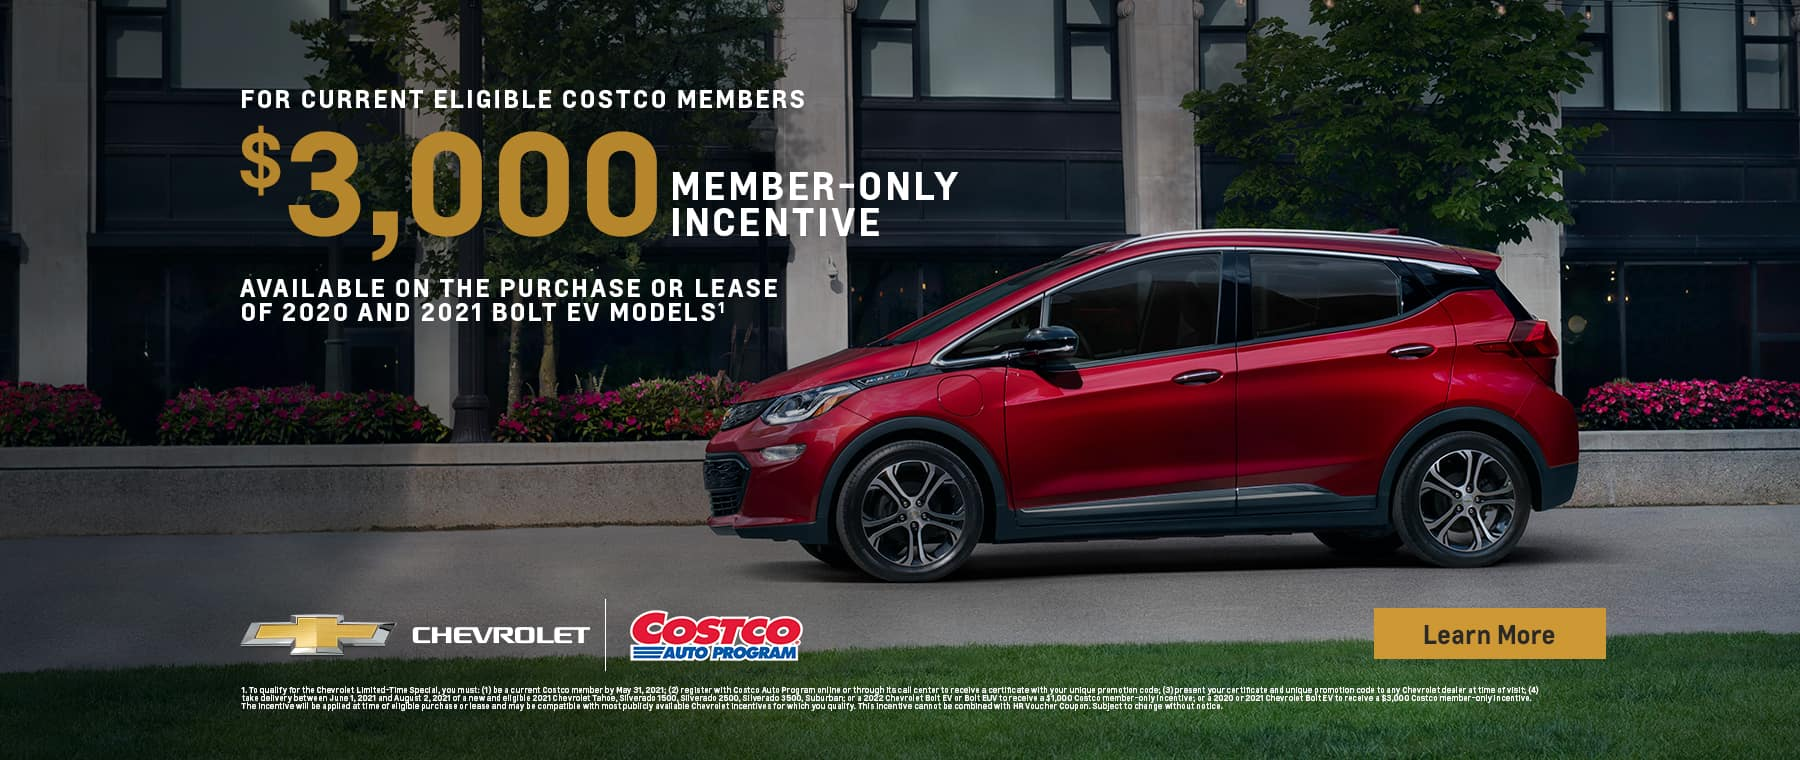 Costco members only sales incentive